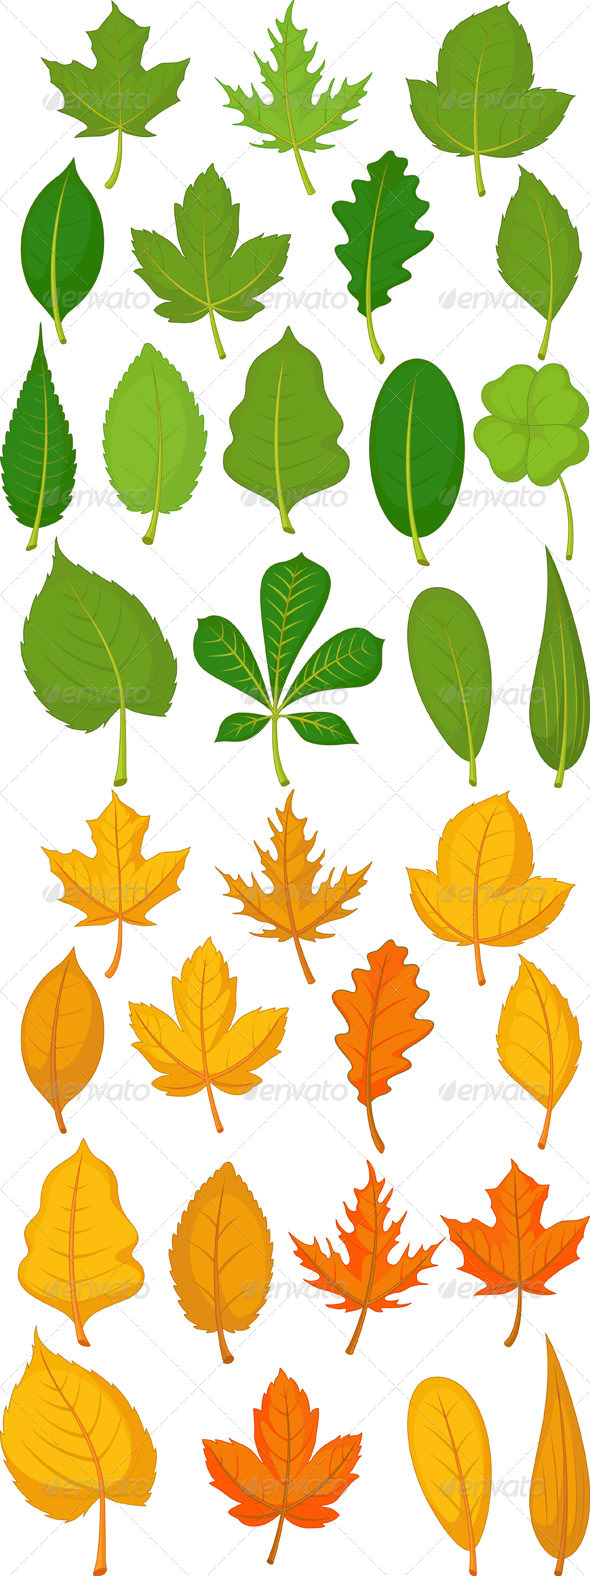 GraphicRiver Leaves Set Green and Autumn Leaves 8565407